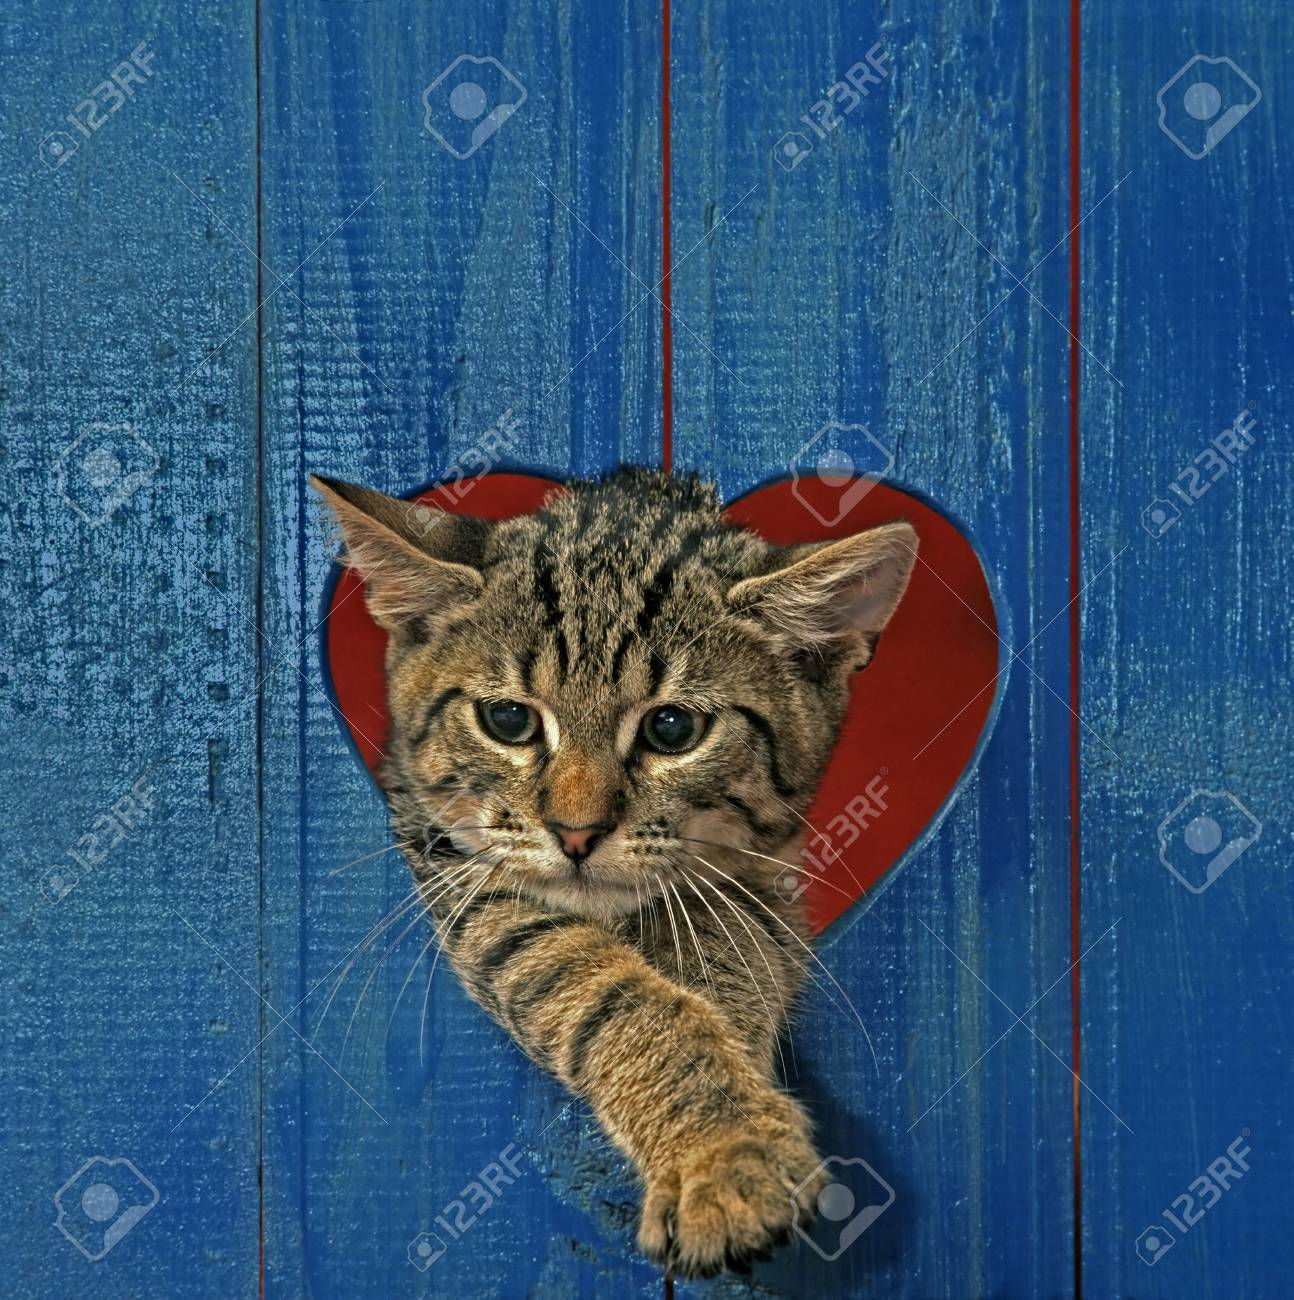 cat looking throw hole in heart shape - 3623866